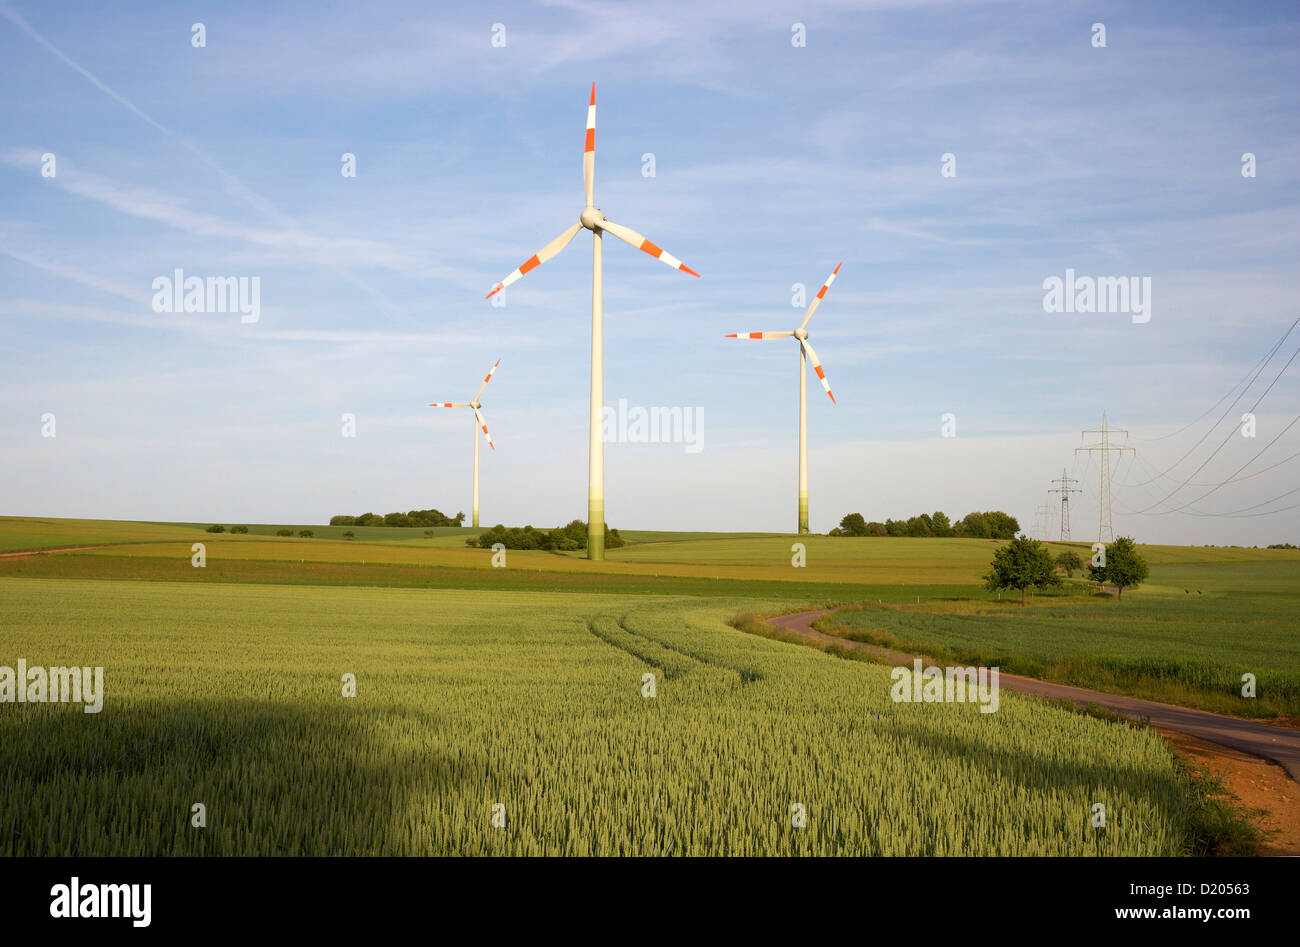 Agricultural landscape with wind wheels near Bueschdorf, Saarland, Germany, Europe - Stock Image